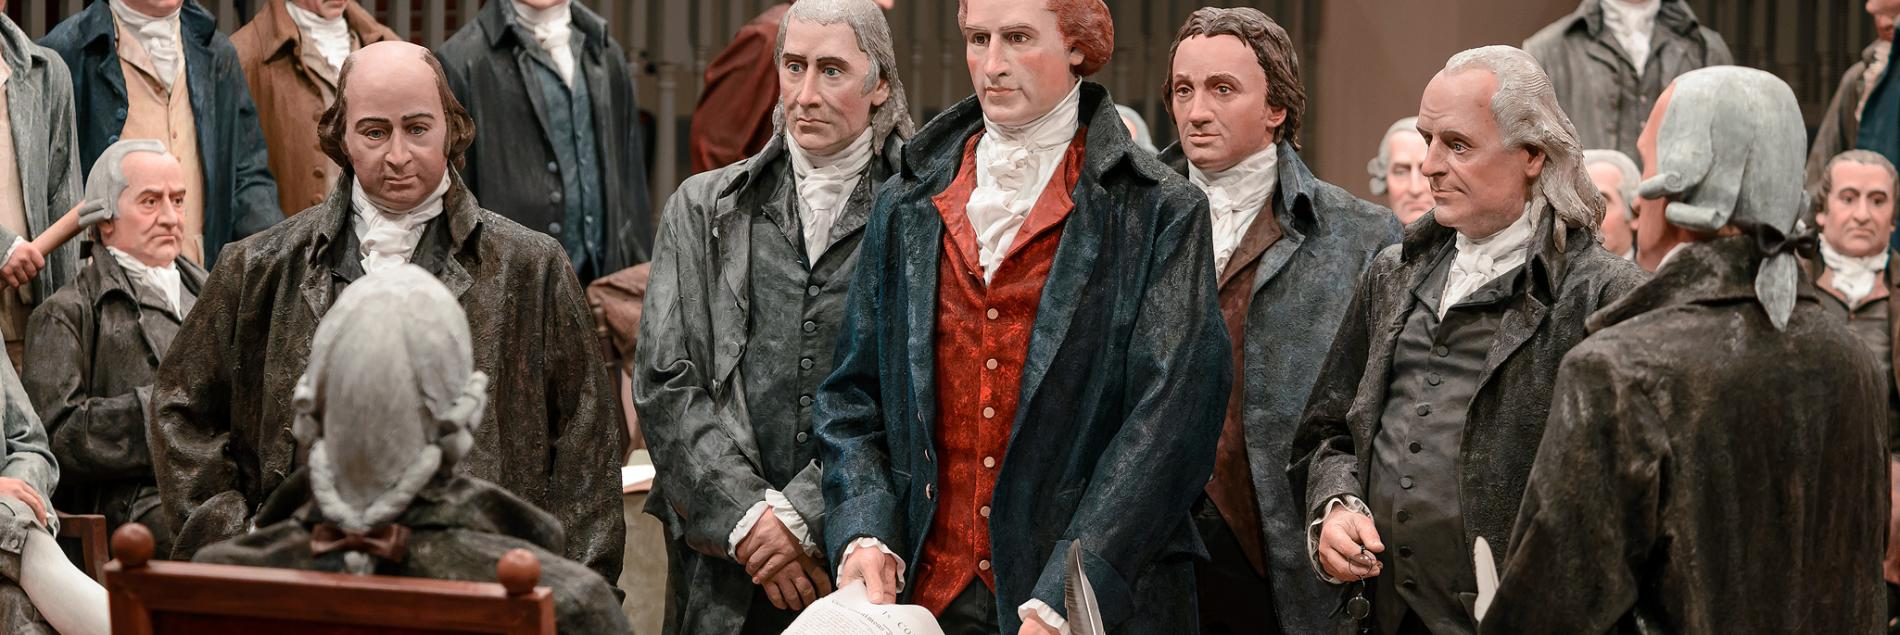 America's Founding Fathers Exhibit